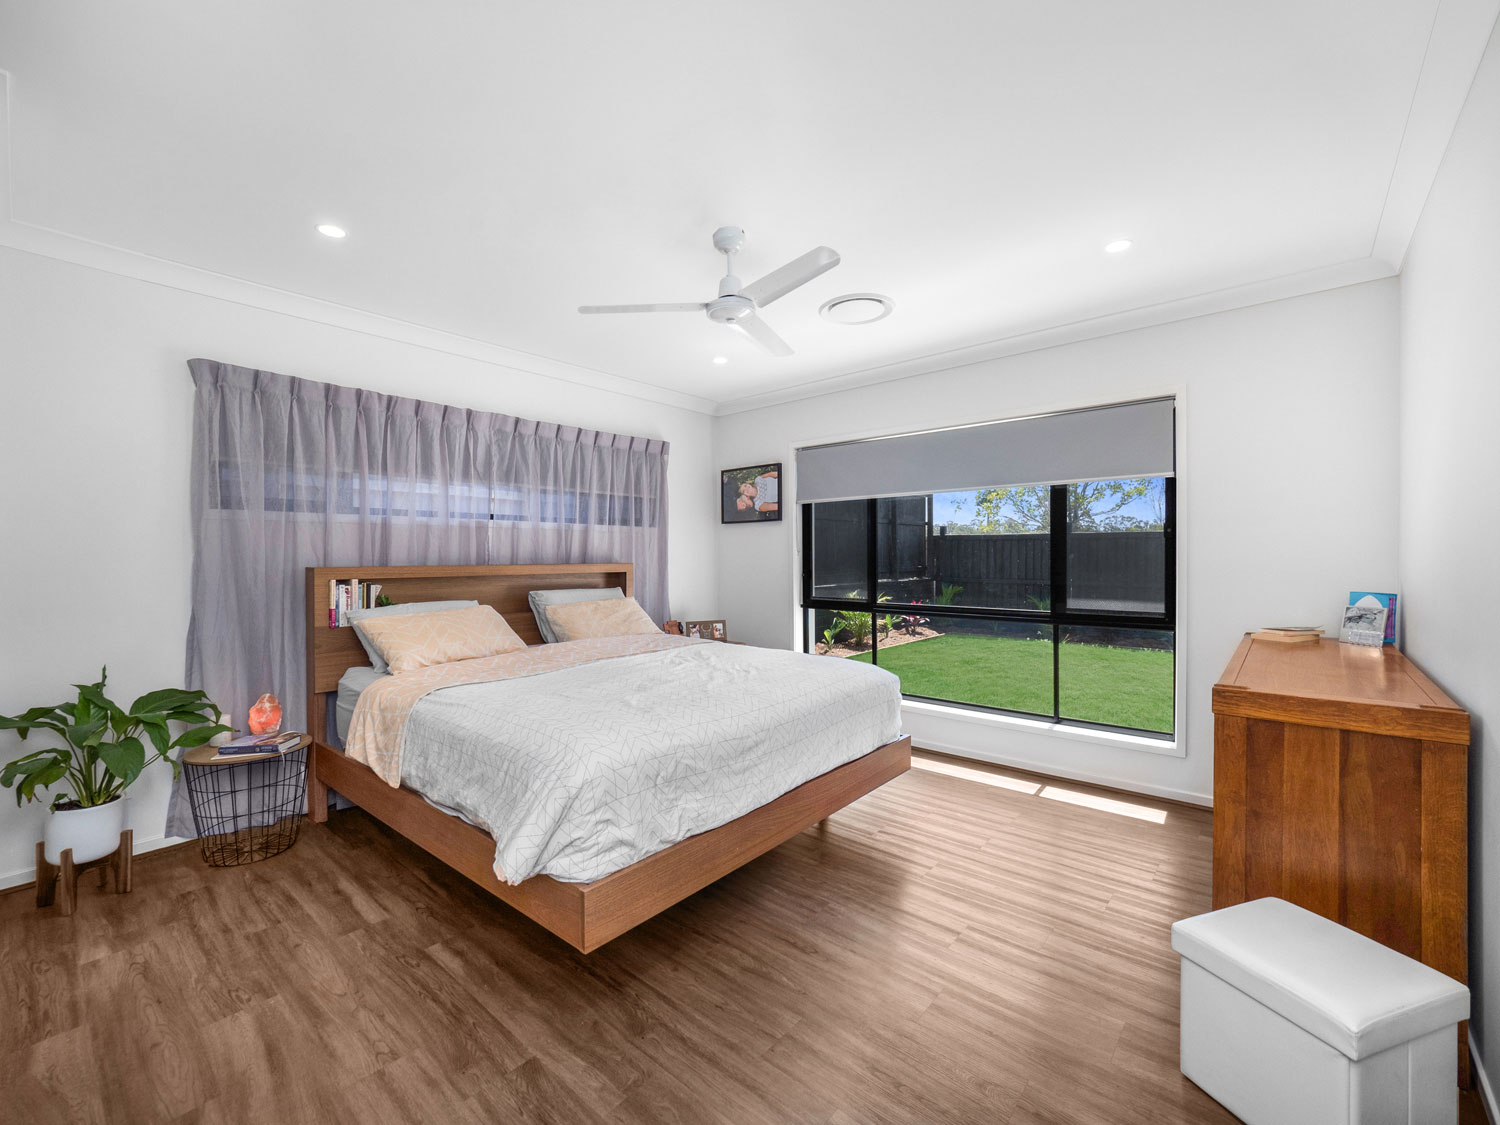 The master bedroom - Real estate photography at Waterford